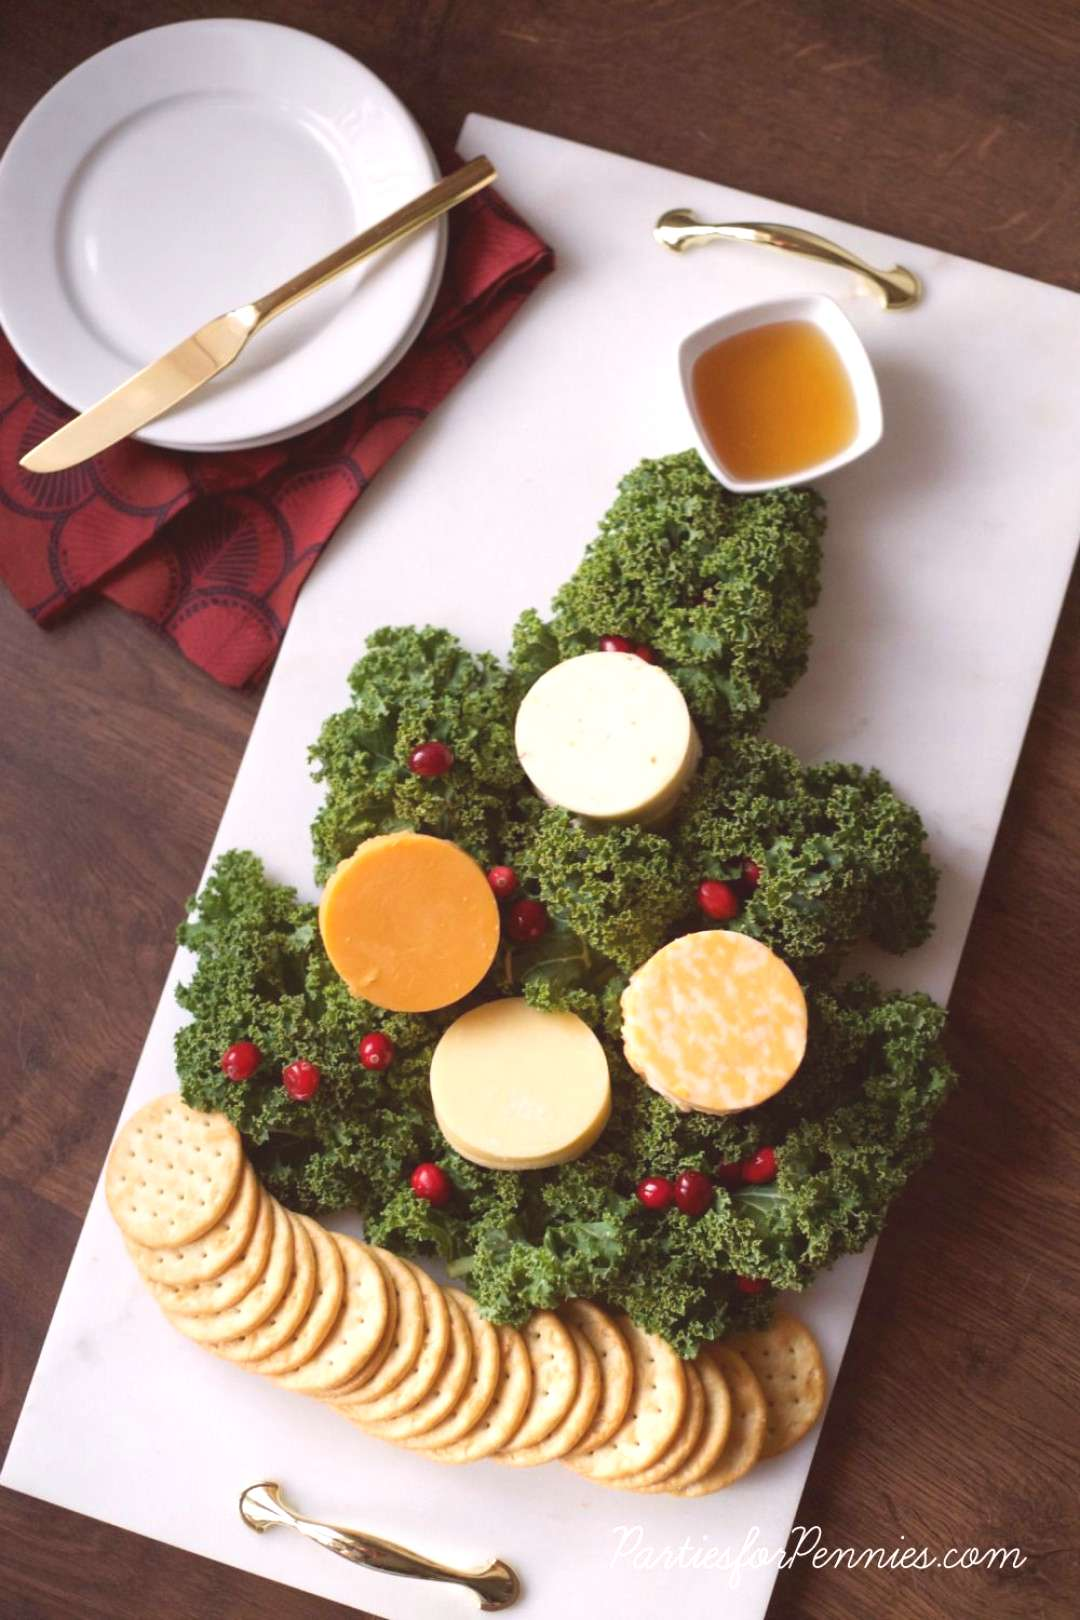 Christmas Tree Cheese Plate - Parties for Pennies - Christmas Tree Cheese Plate by PartiesforPenni